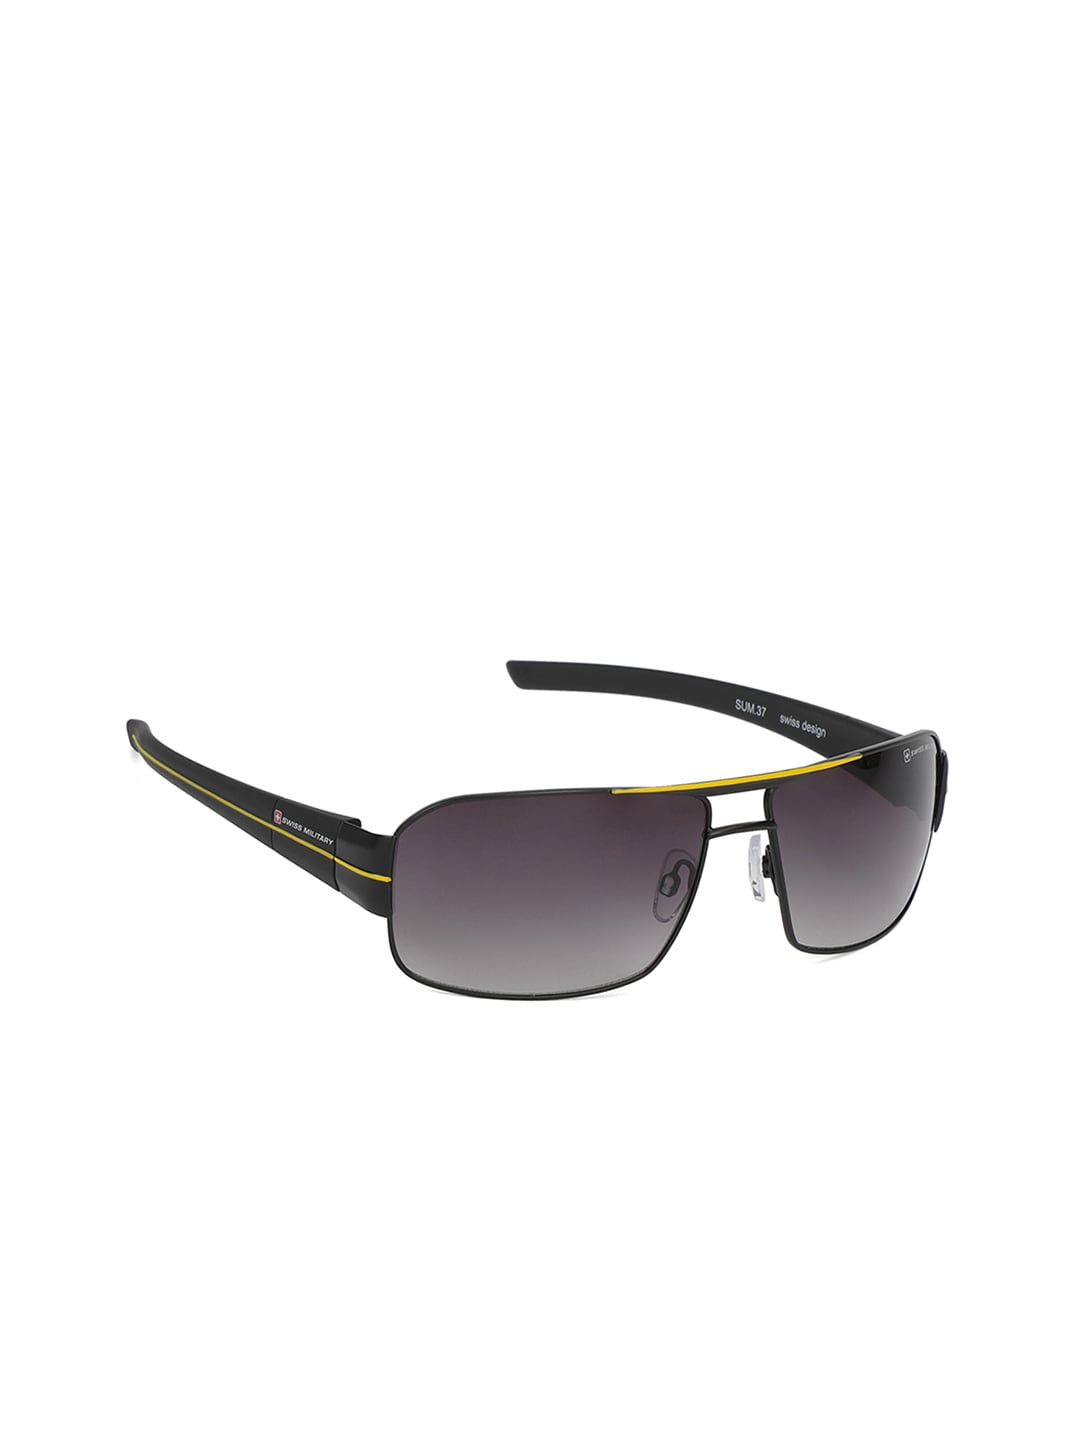 d5ac51ea7a Swiss Military Sunglasses - Buy Swiss Military Sunglasses online in India